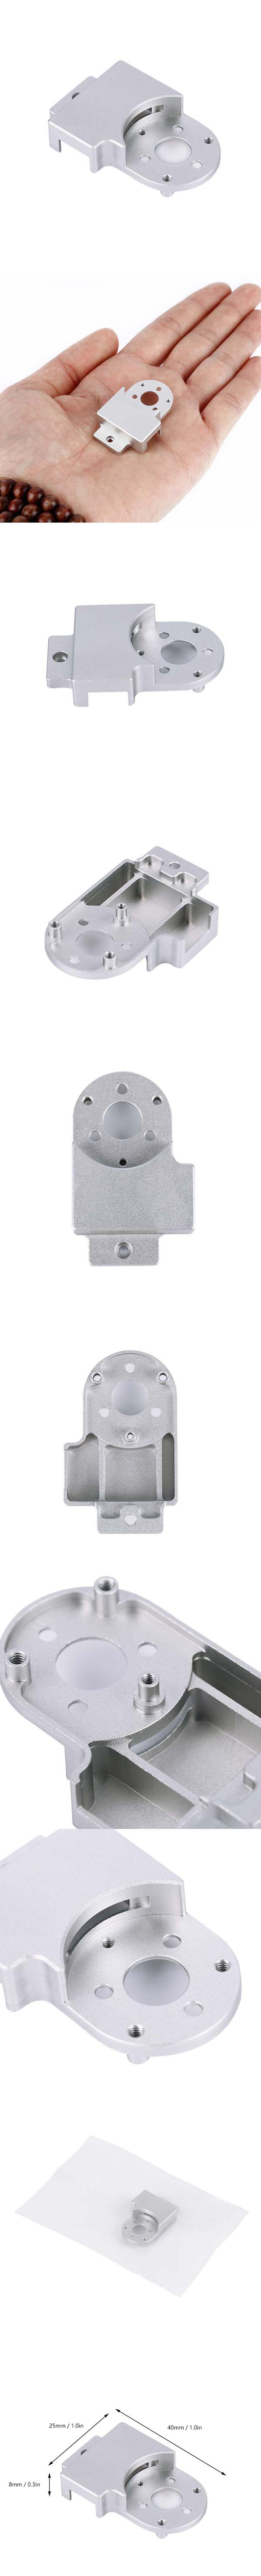 Silver PTZ Gimble Accessories Cover Stand Shaped for DJI Phantom Quadcoter RC A676